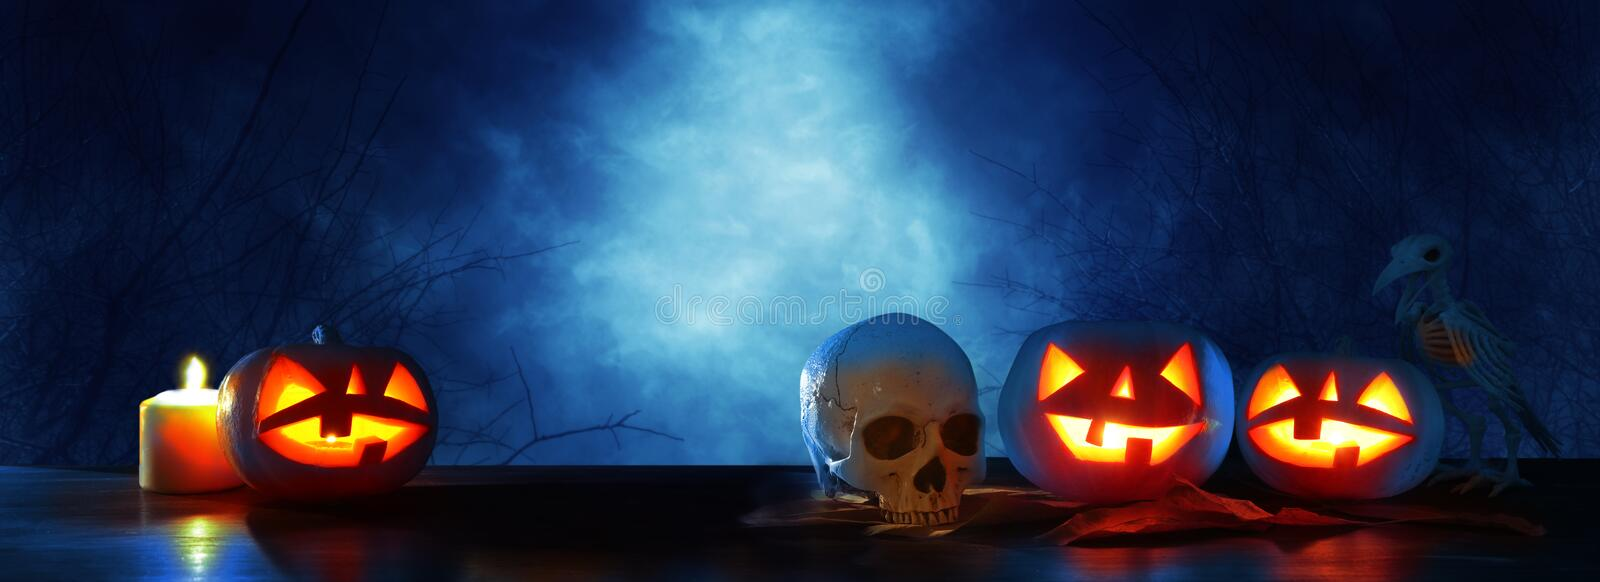 Halloween holiday concept banner. Pumpkins over wooden table at night scary, haunted and misty forest. stock images